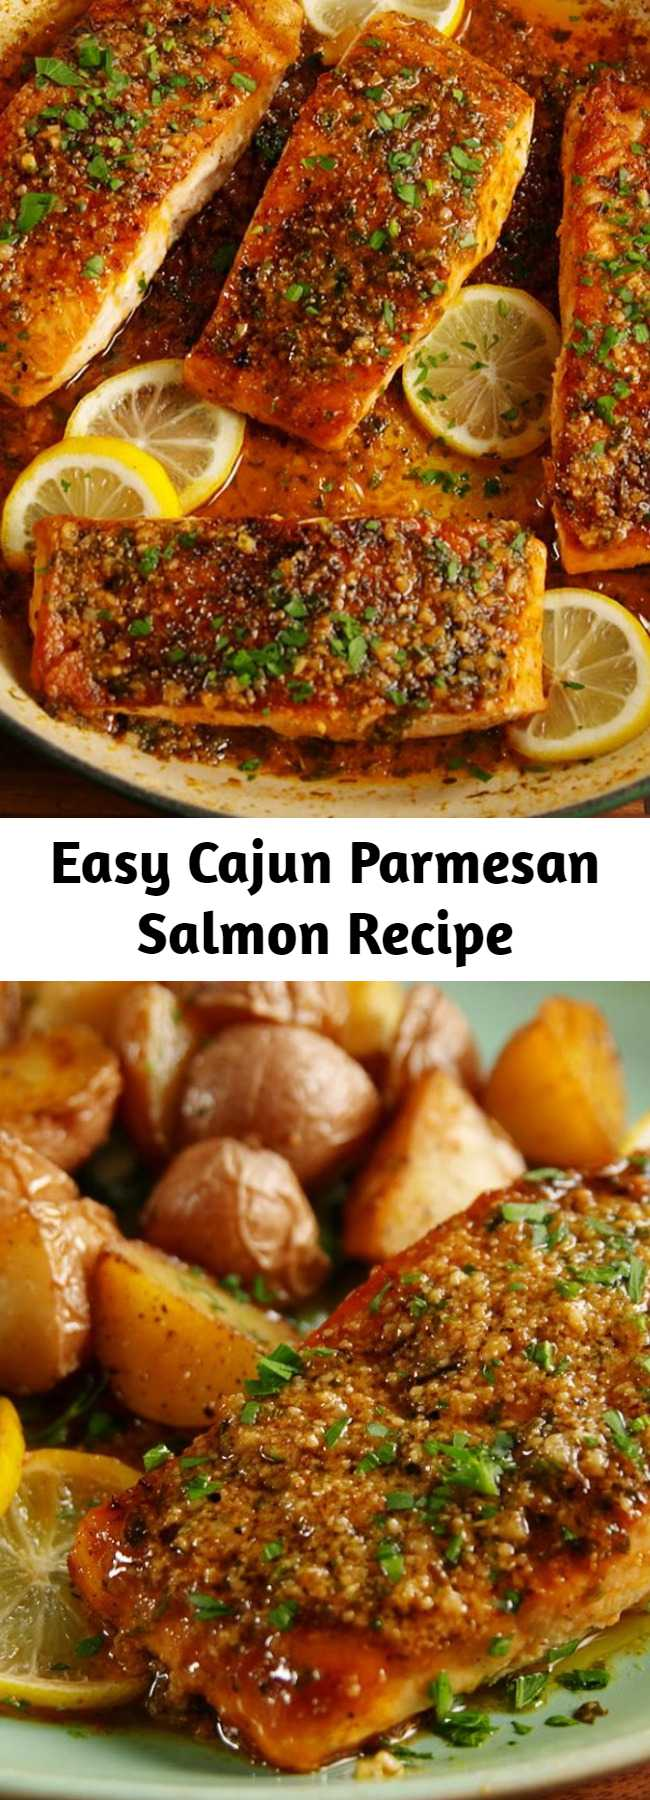 Easy Cajun Parmesan Salmon Recipe - This salmon has a simple sauce that's made right in the pan. A little kick from the cajun seasoning and a little sweet from the honey it's the perfect combo. Serve it alongside some roasted potatoes and extra Parmesan! #recipes #easyrecipes #healthyrecipes #salmon #dinner